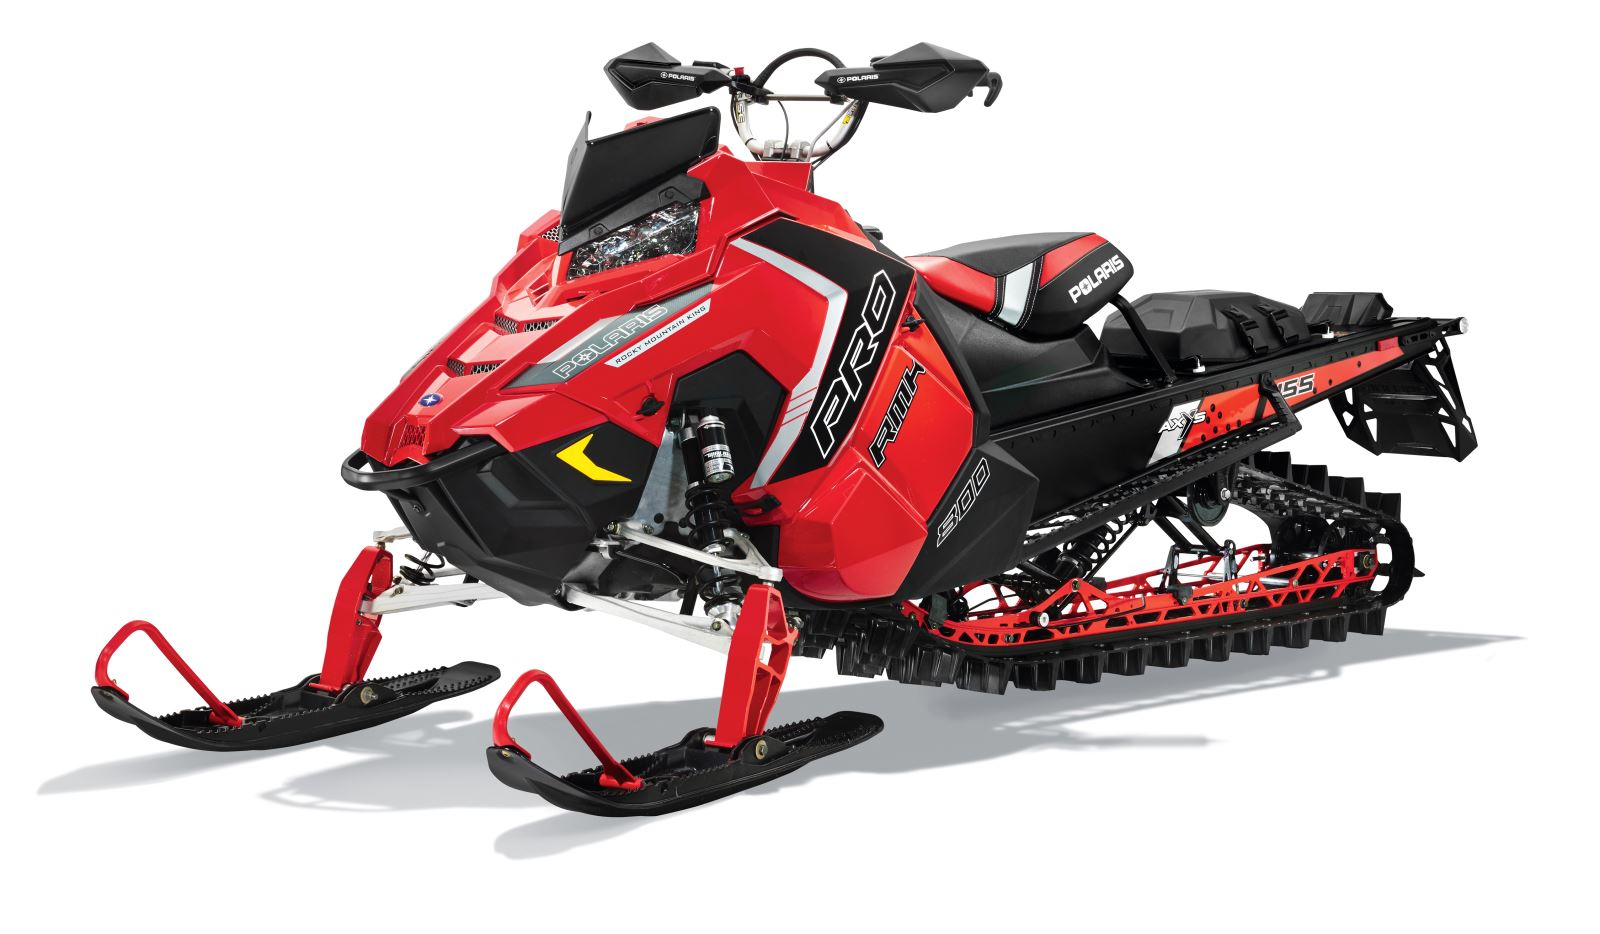 Highlights For The 2016 Axys Mountain Sleds Include